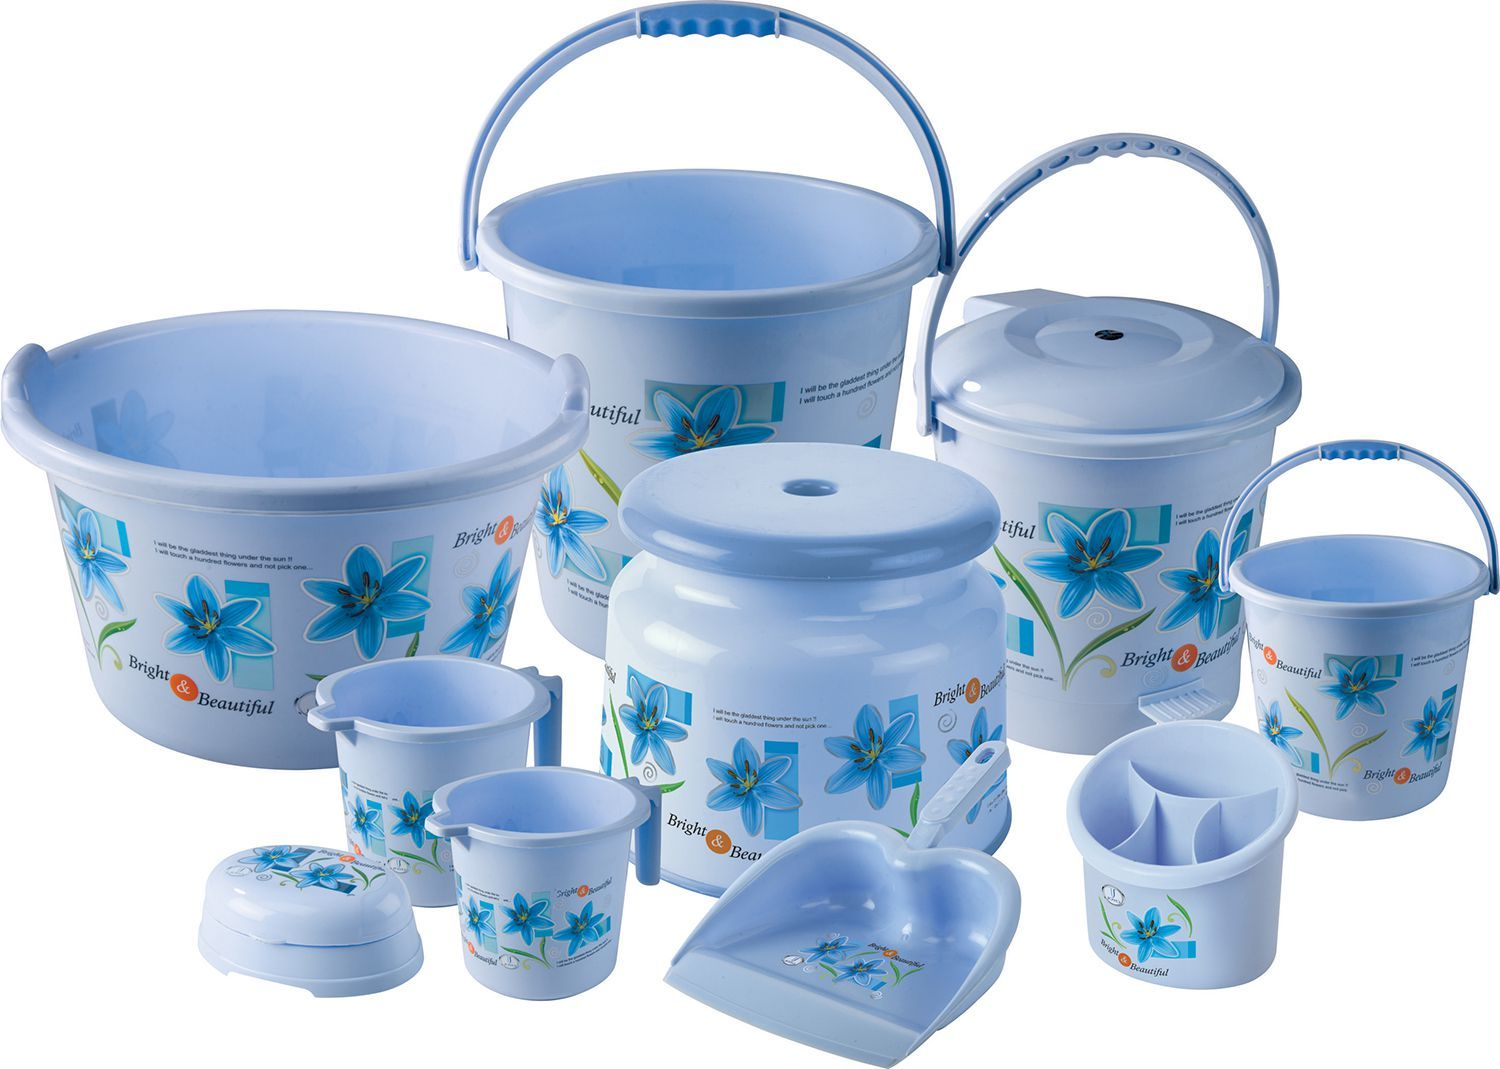 8 Piece Plastic Bathroom Set Online Shop Here with COD # ...